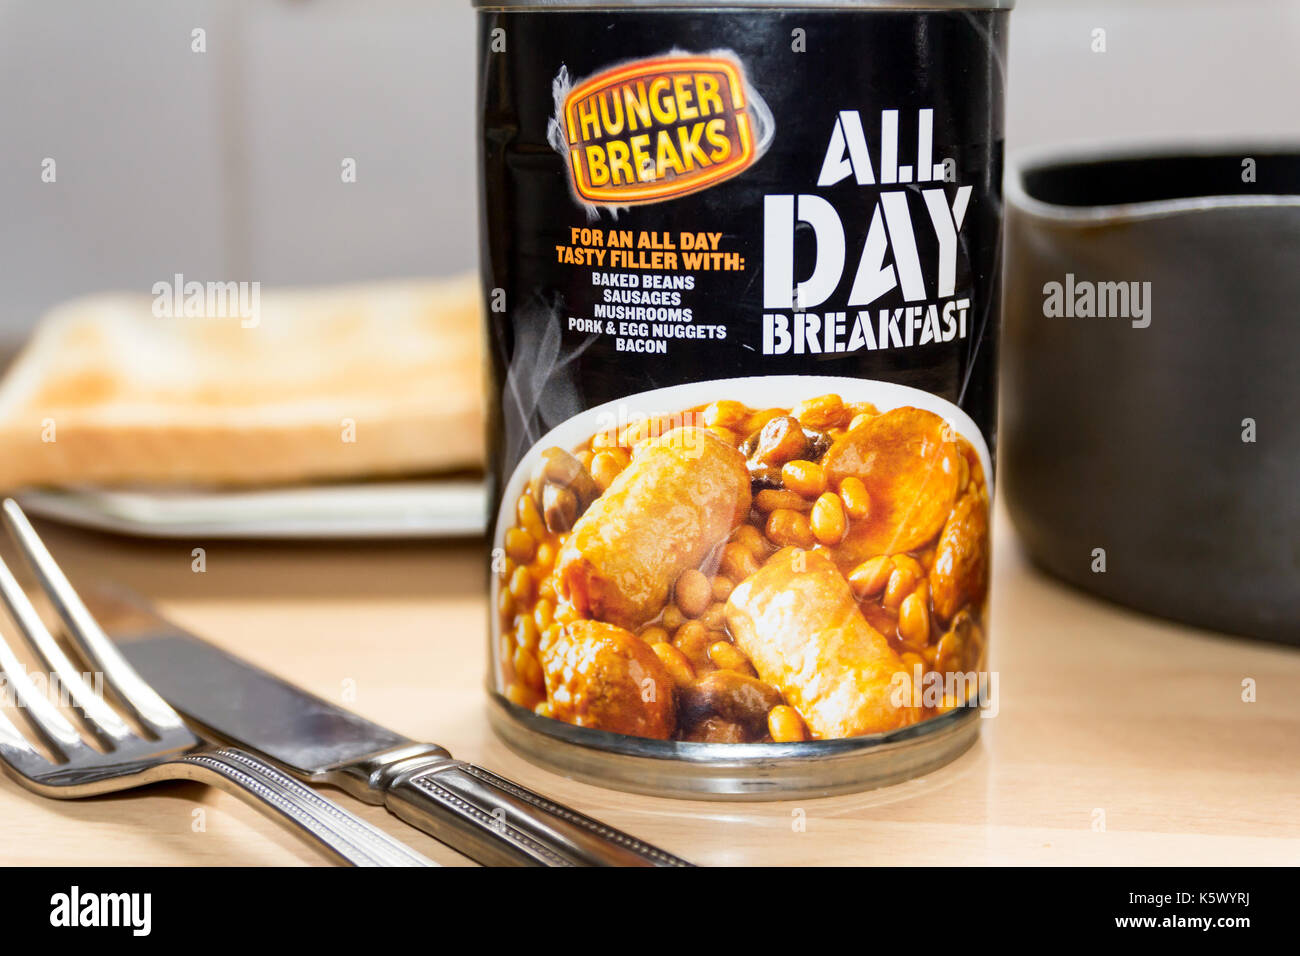 TELFORD, SHROPSHIRE U.K. - SEPTEMBER 6, 2017: Still Life of a can of 'All Day Breakfast' with toast in the background and a saucepan to the right. - Stock Image